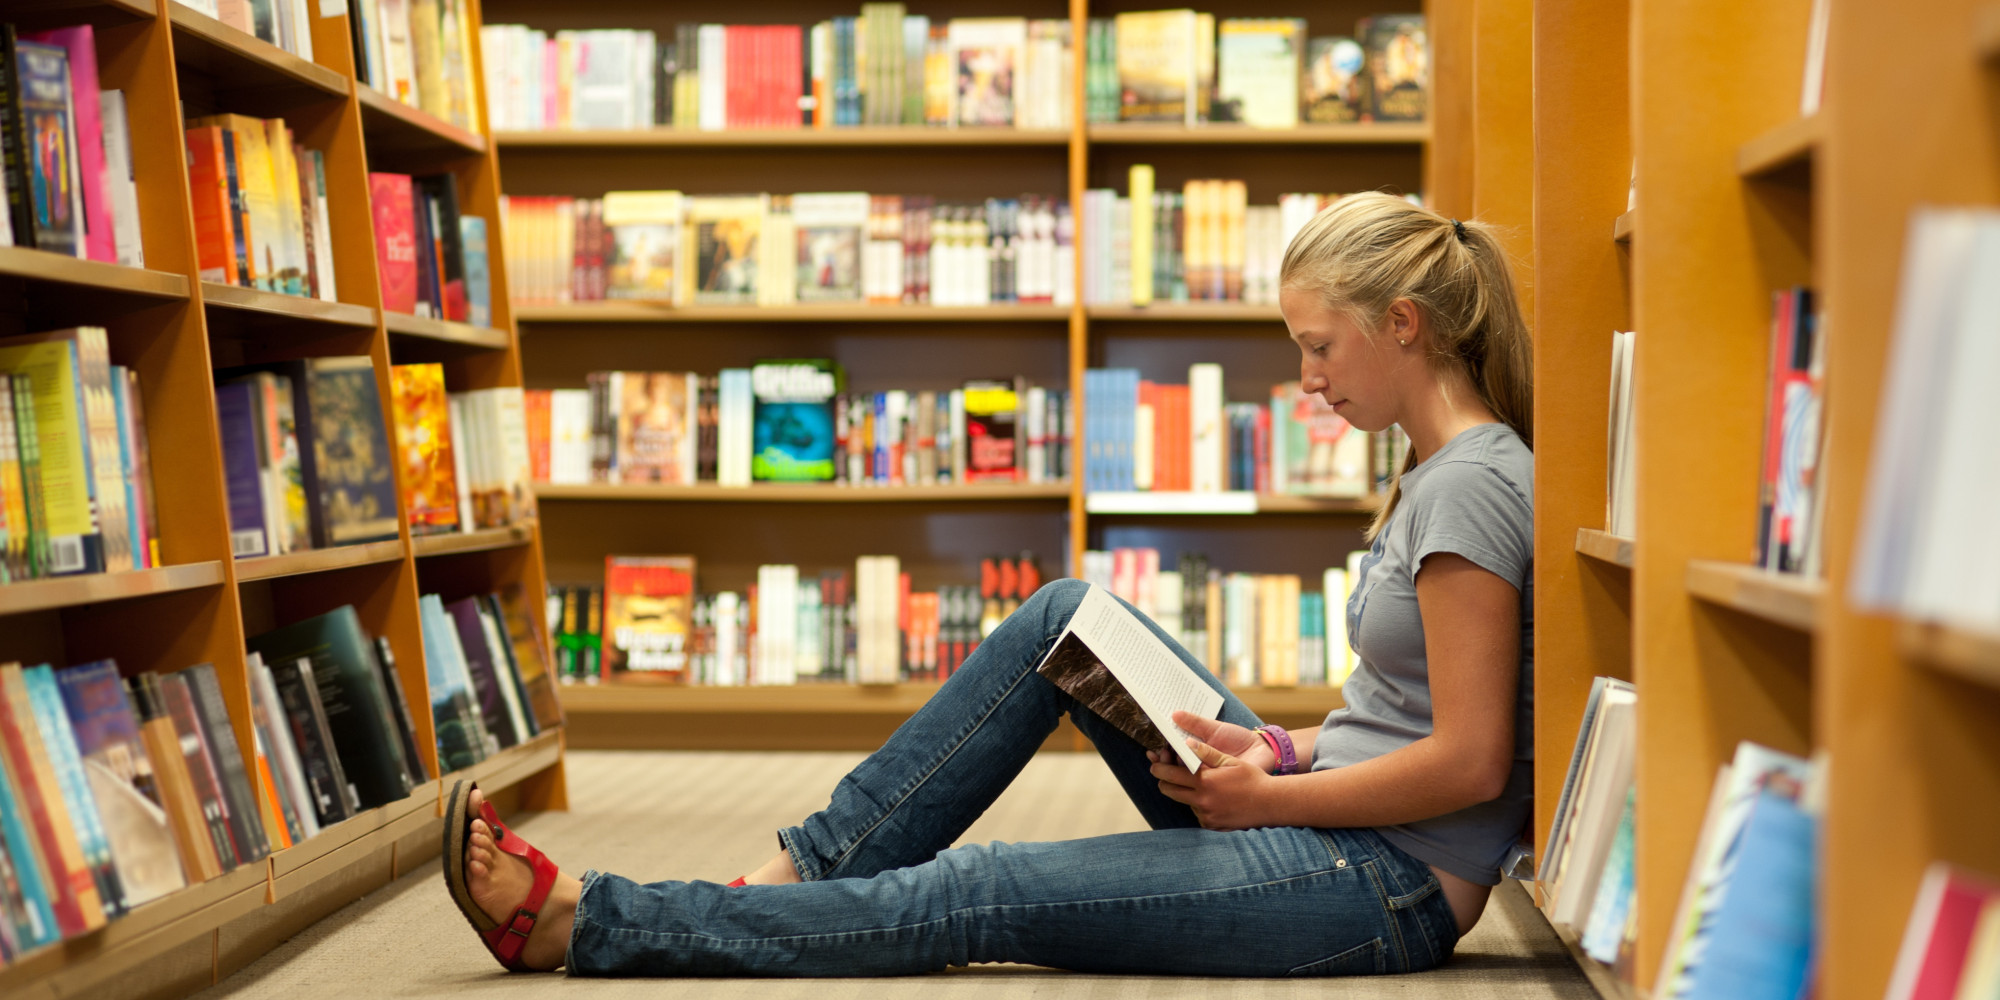 The 9 Best Books For Meaningful Change